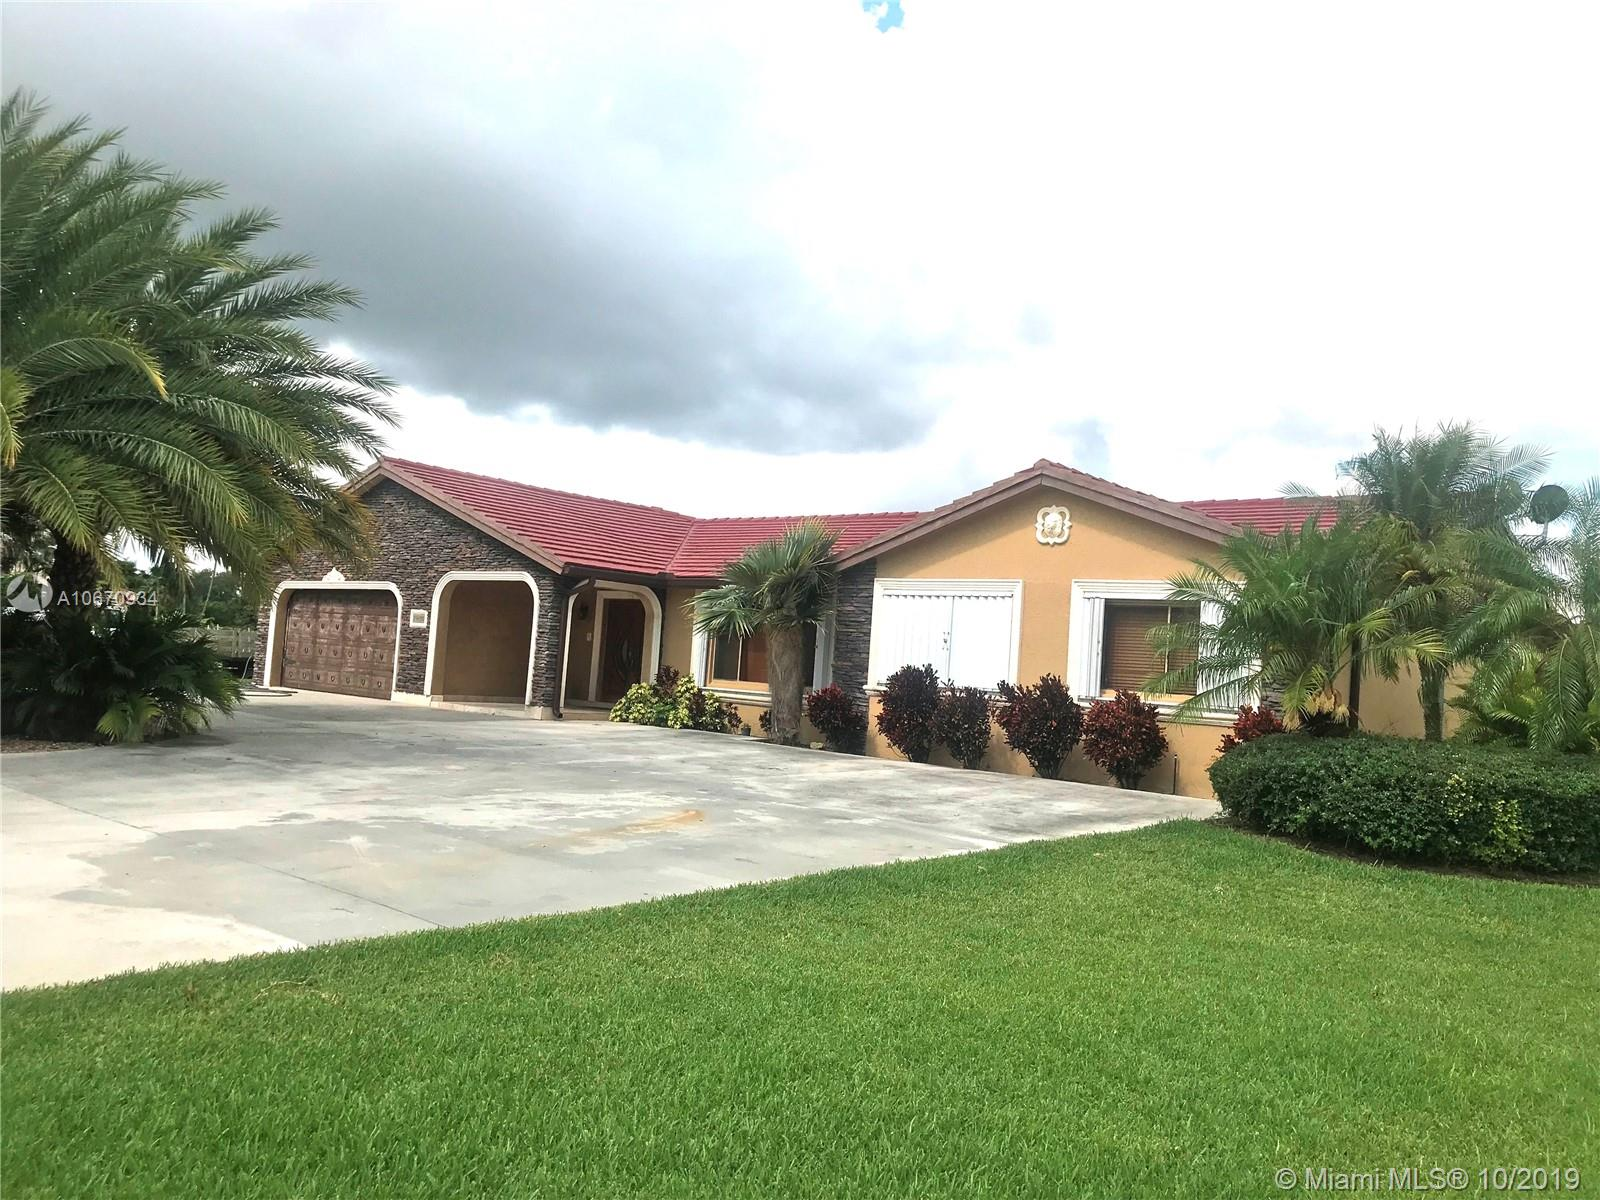 24450 SW 214th Pl, Homestead, Florida